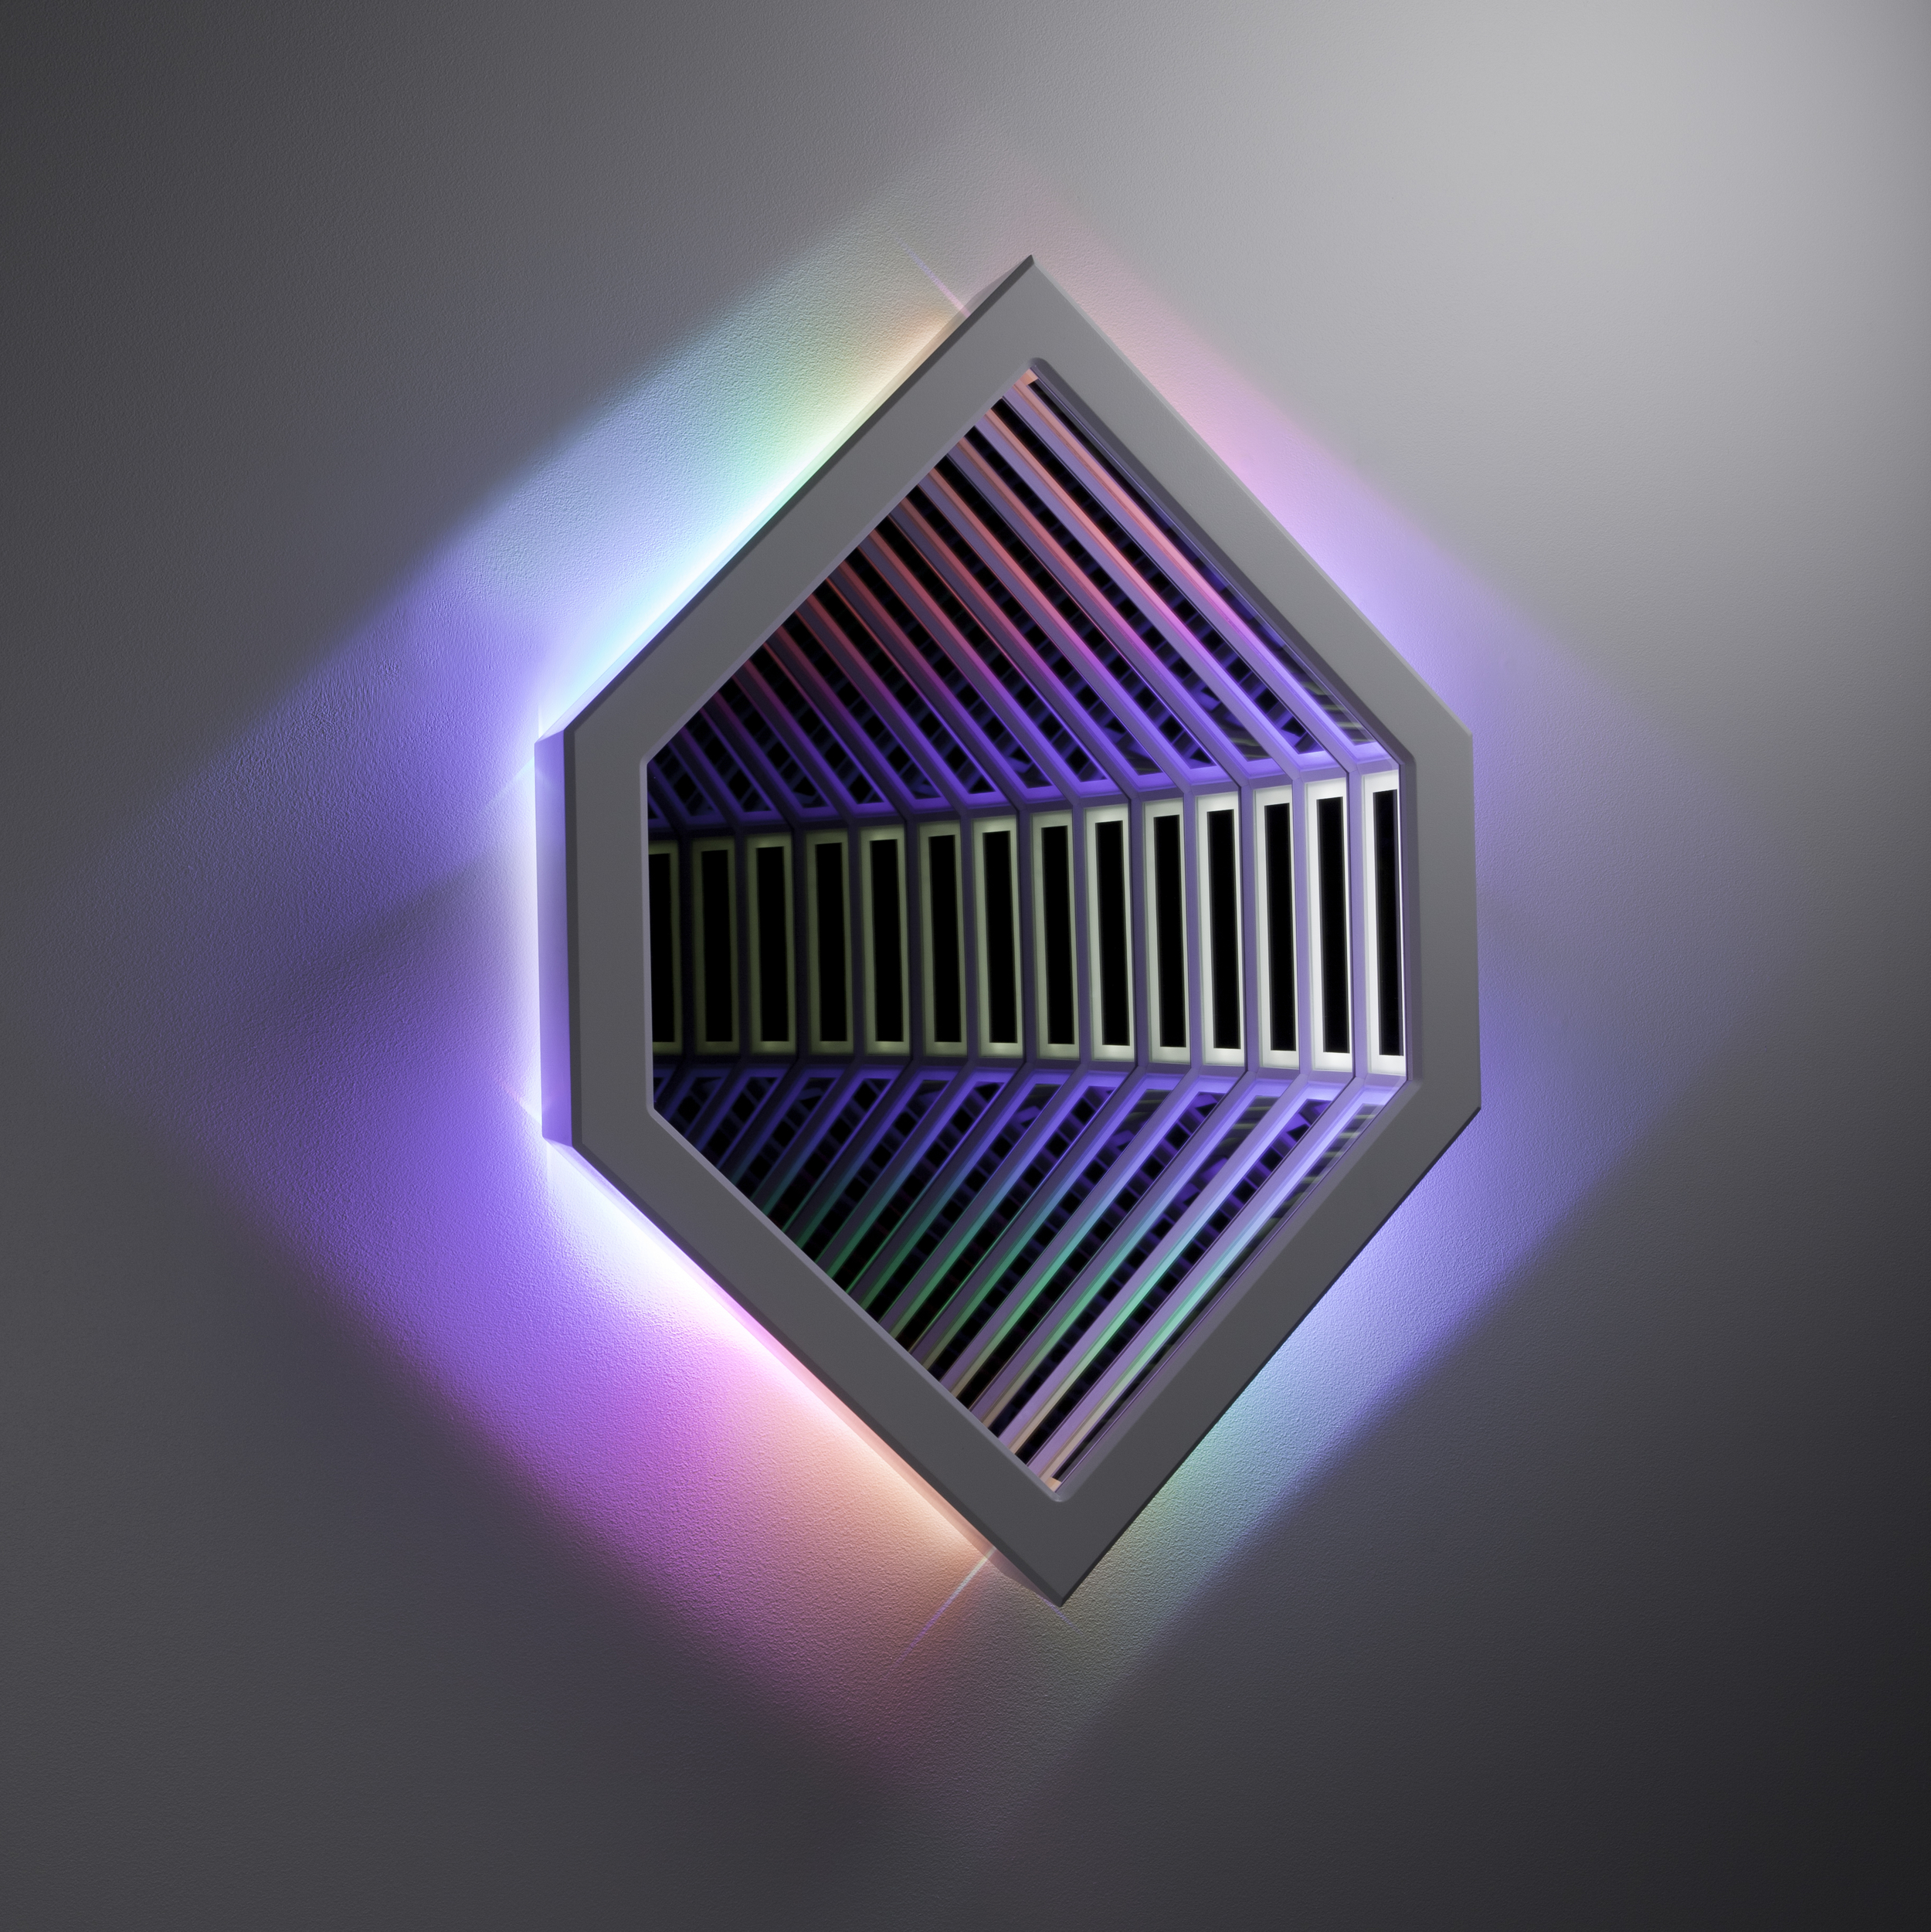 Spectrum II , wood, mirror, reflective glass, MDF and LED lights, 92x 65x 14cm. Photo: Pippy Mount.